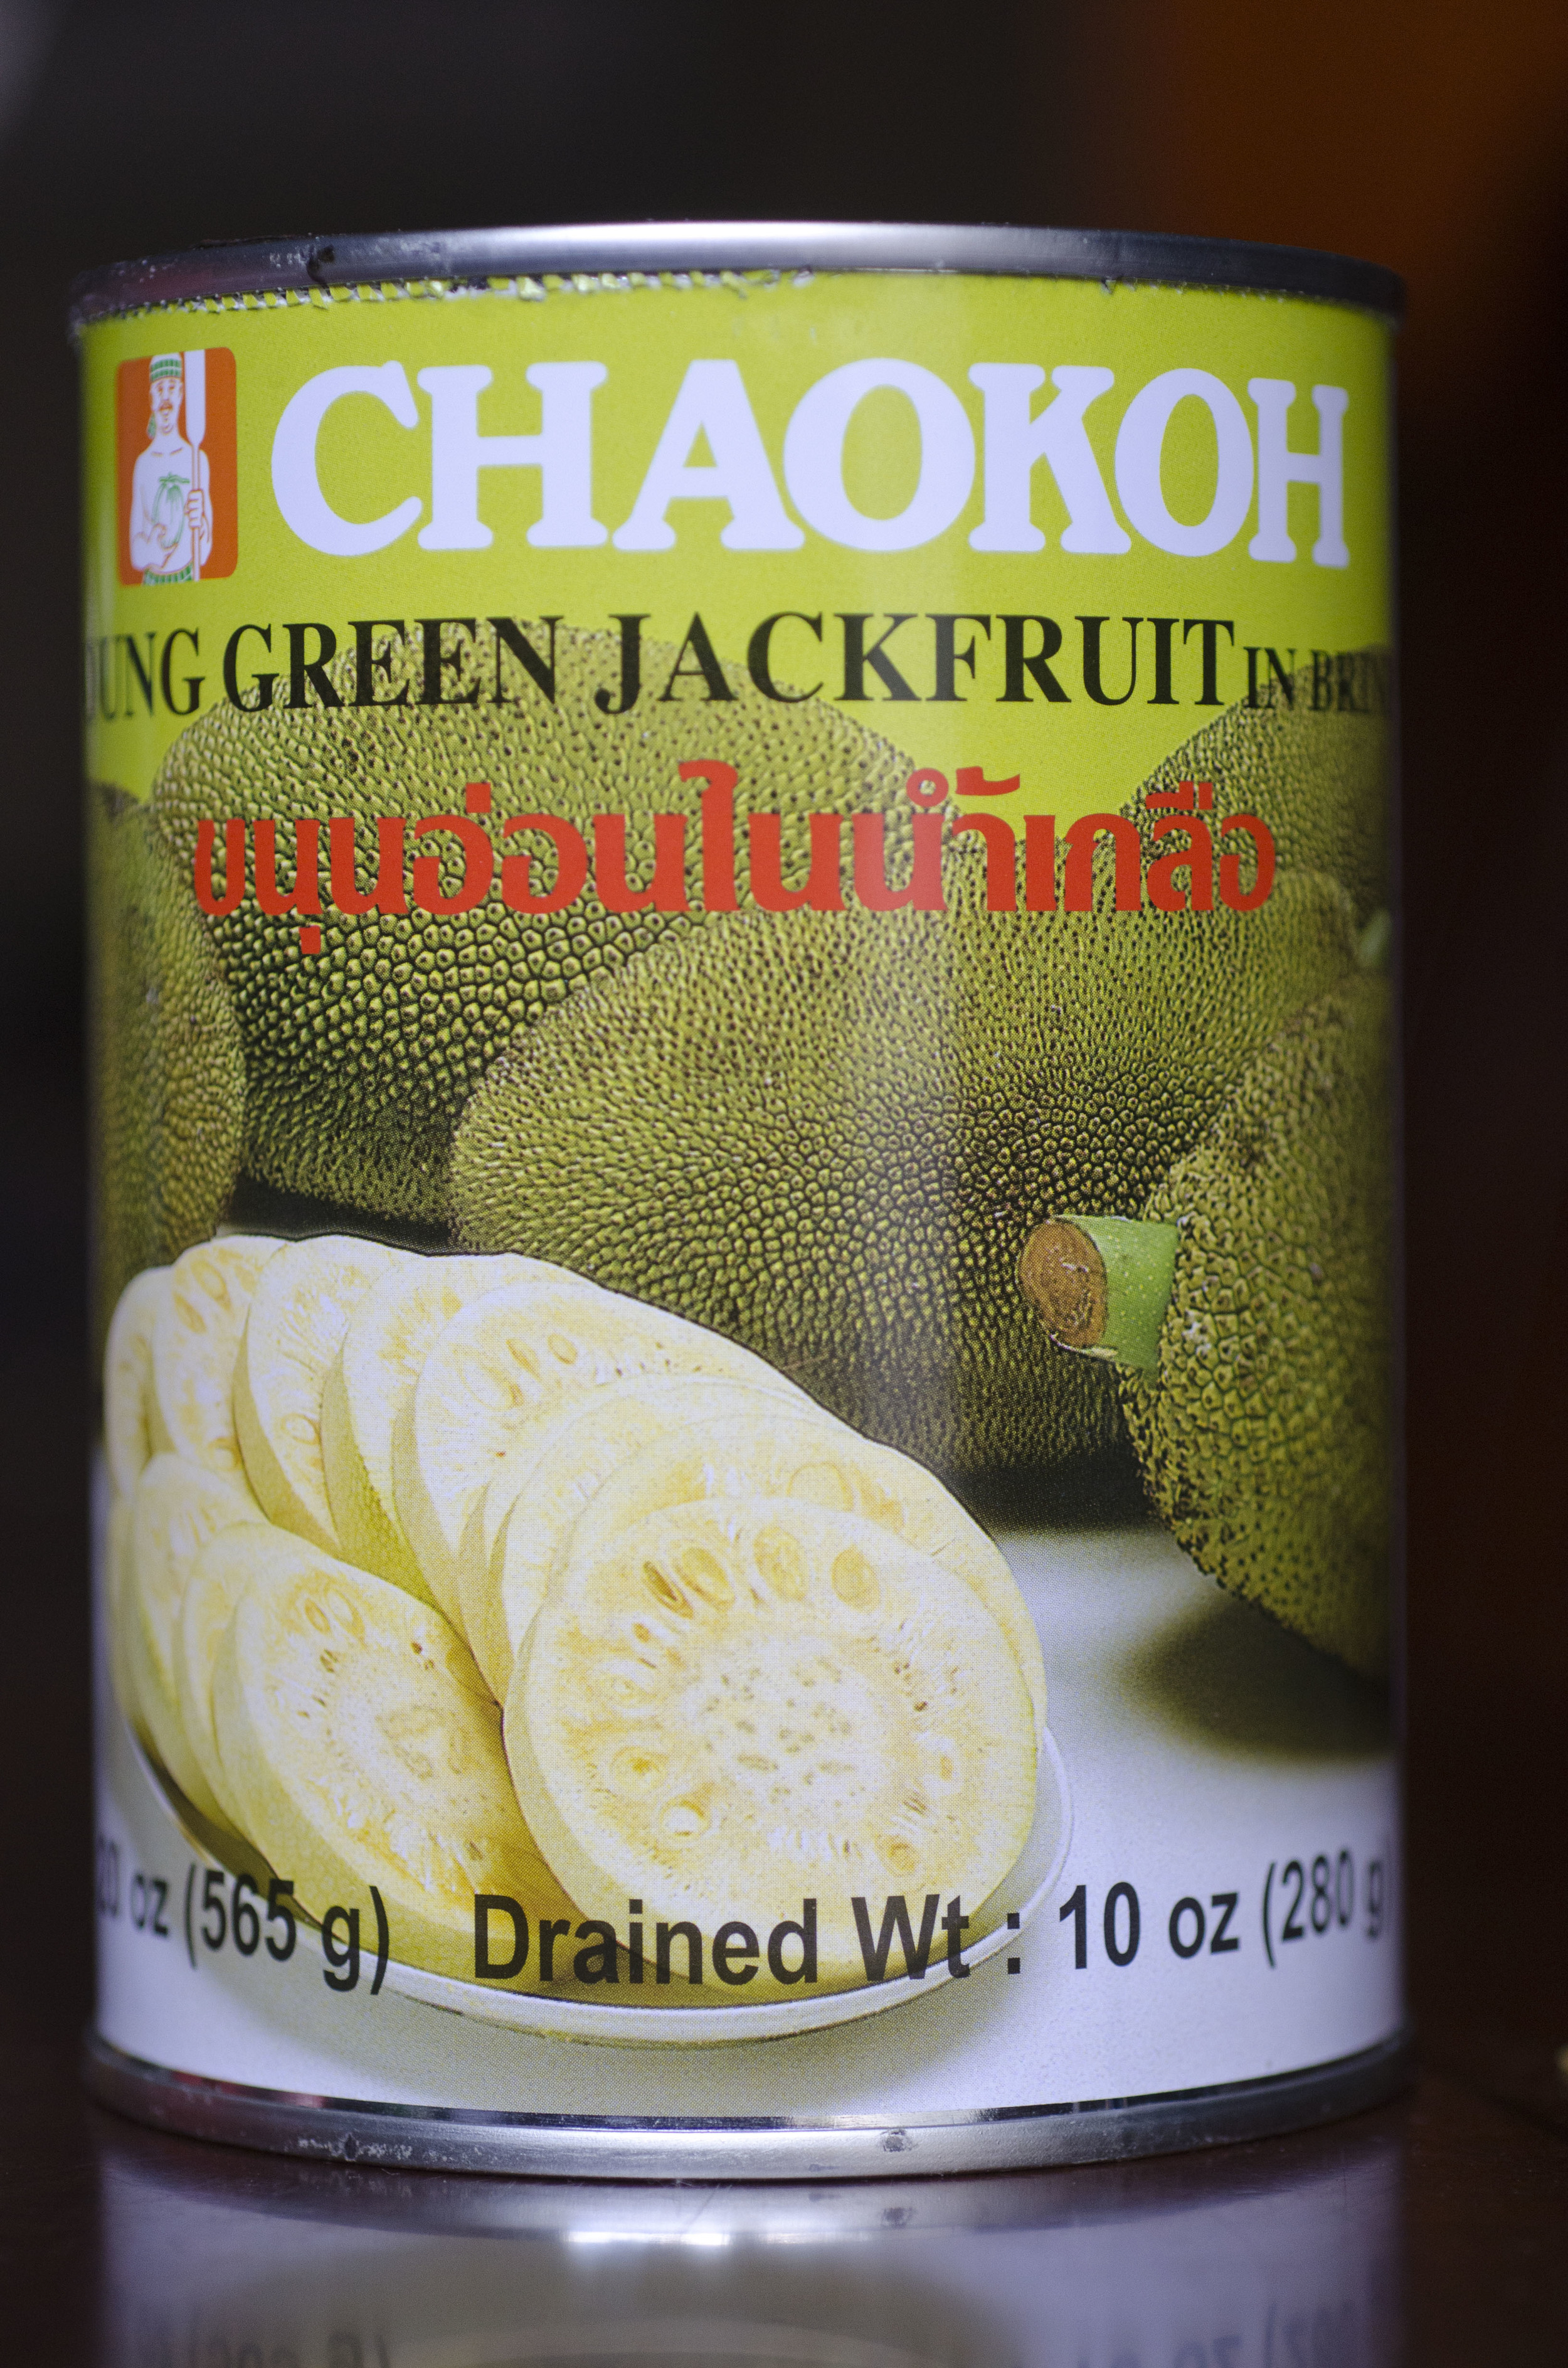 Jackfruit: the other white meat (ish sort of fruit)